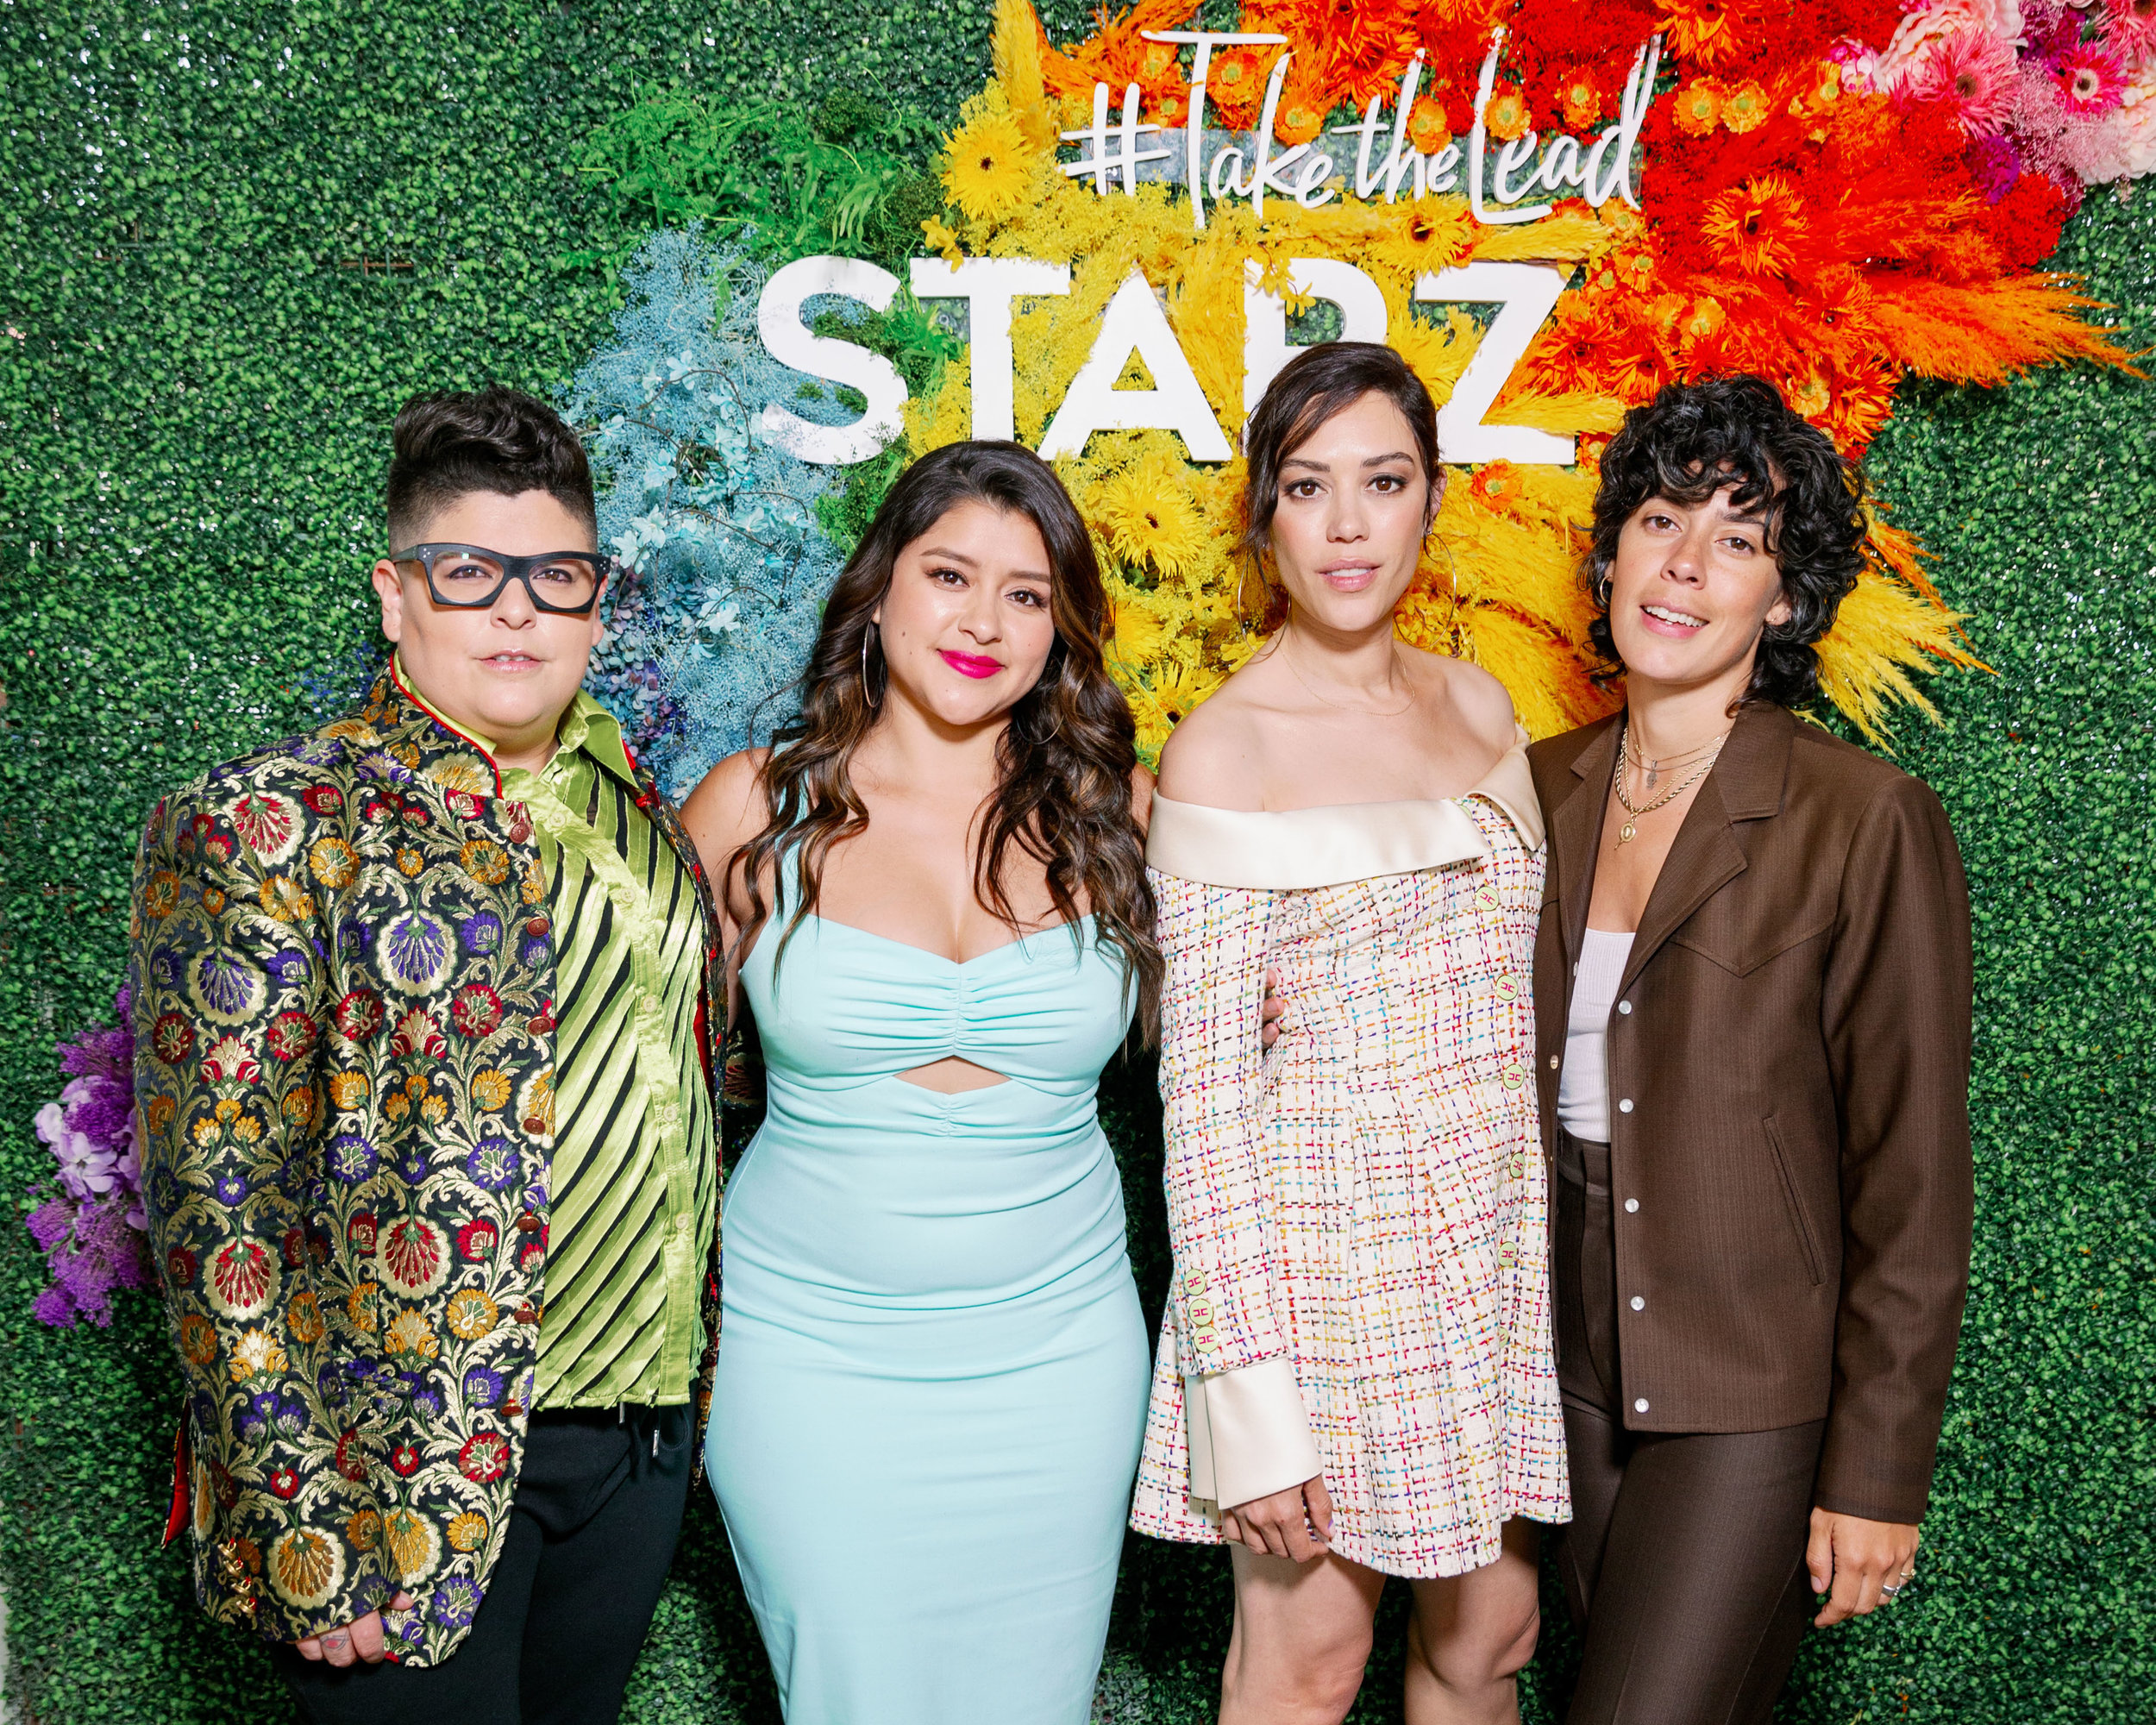 The stars of Starz's VIDA at Create & Cultivate. From left to right: Ser Anzoategui, Chelsea Rendon, Mishel Prada, and Roberta Colindrez.